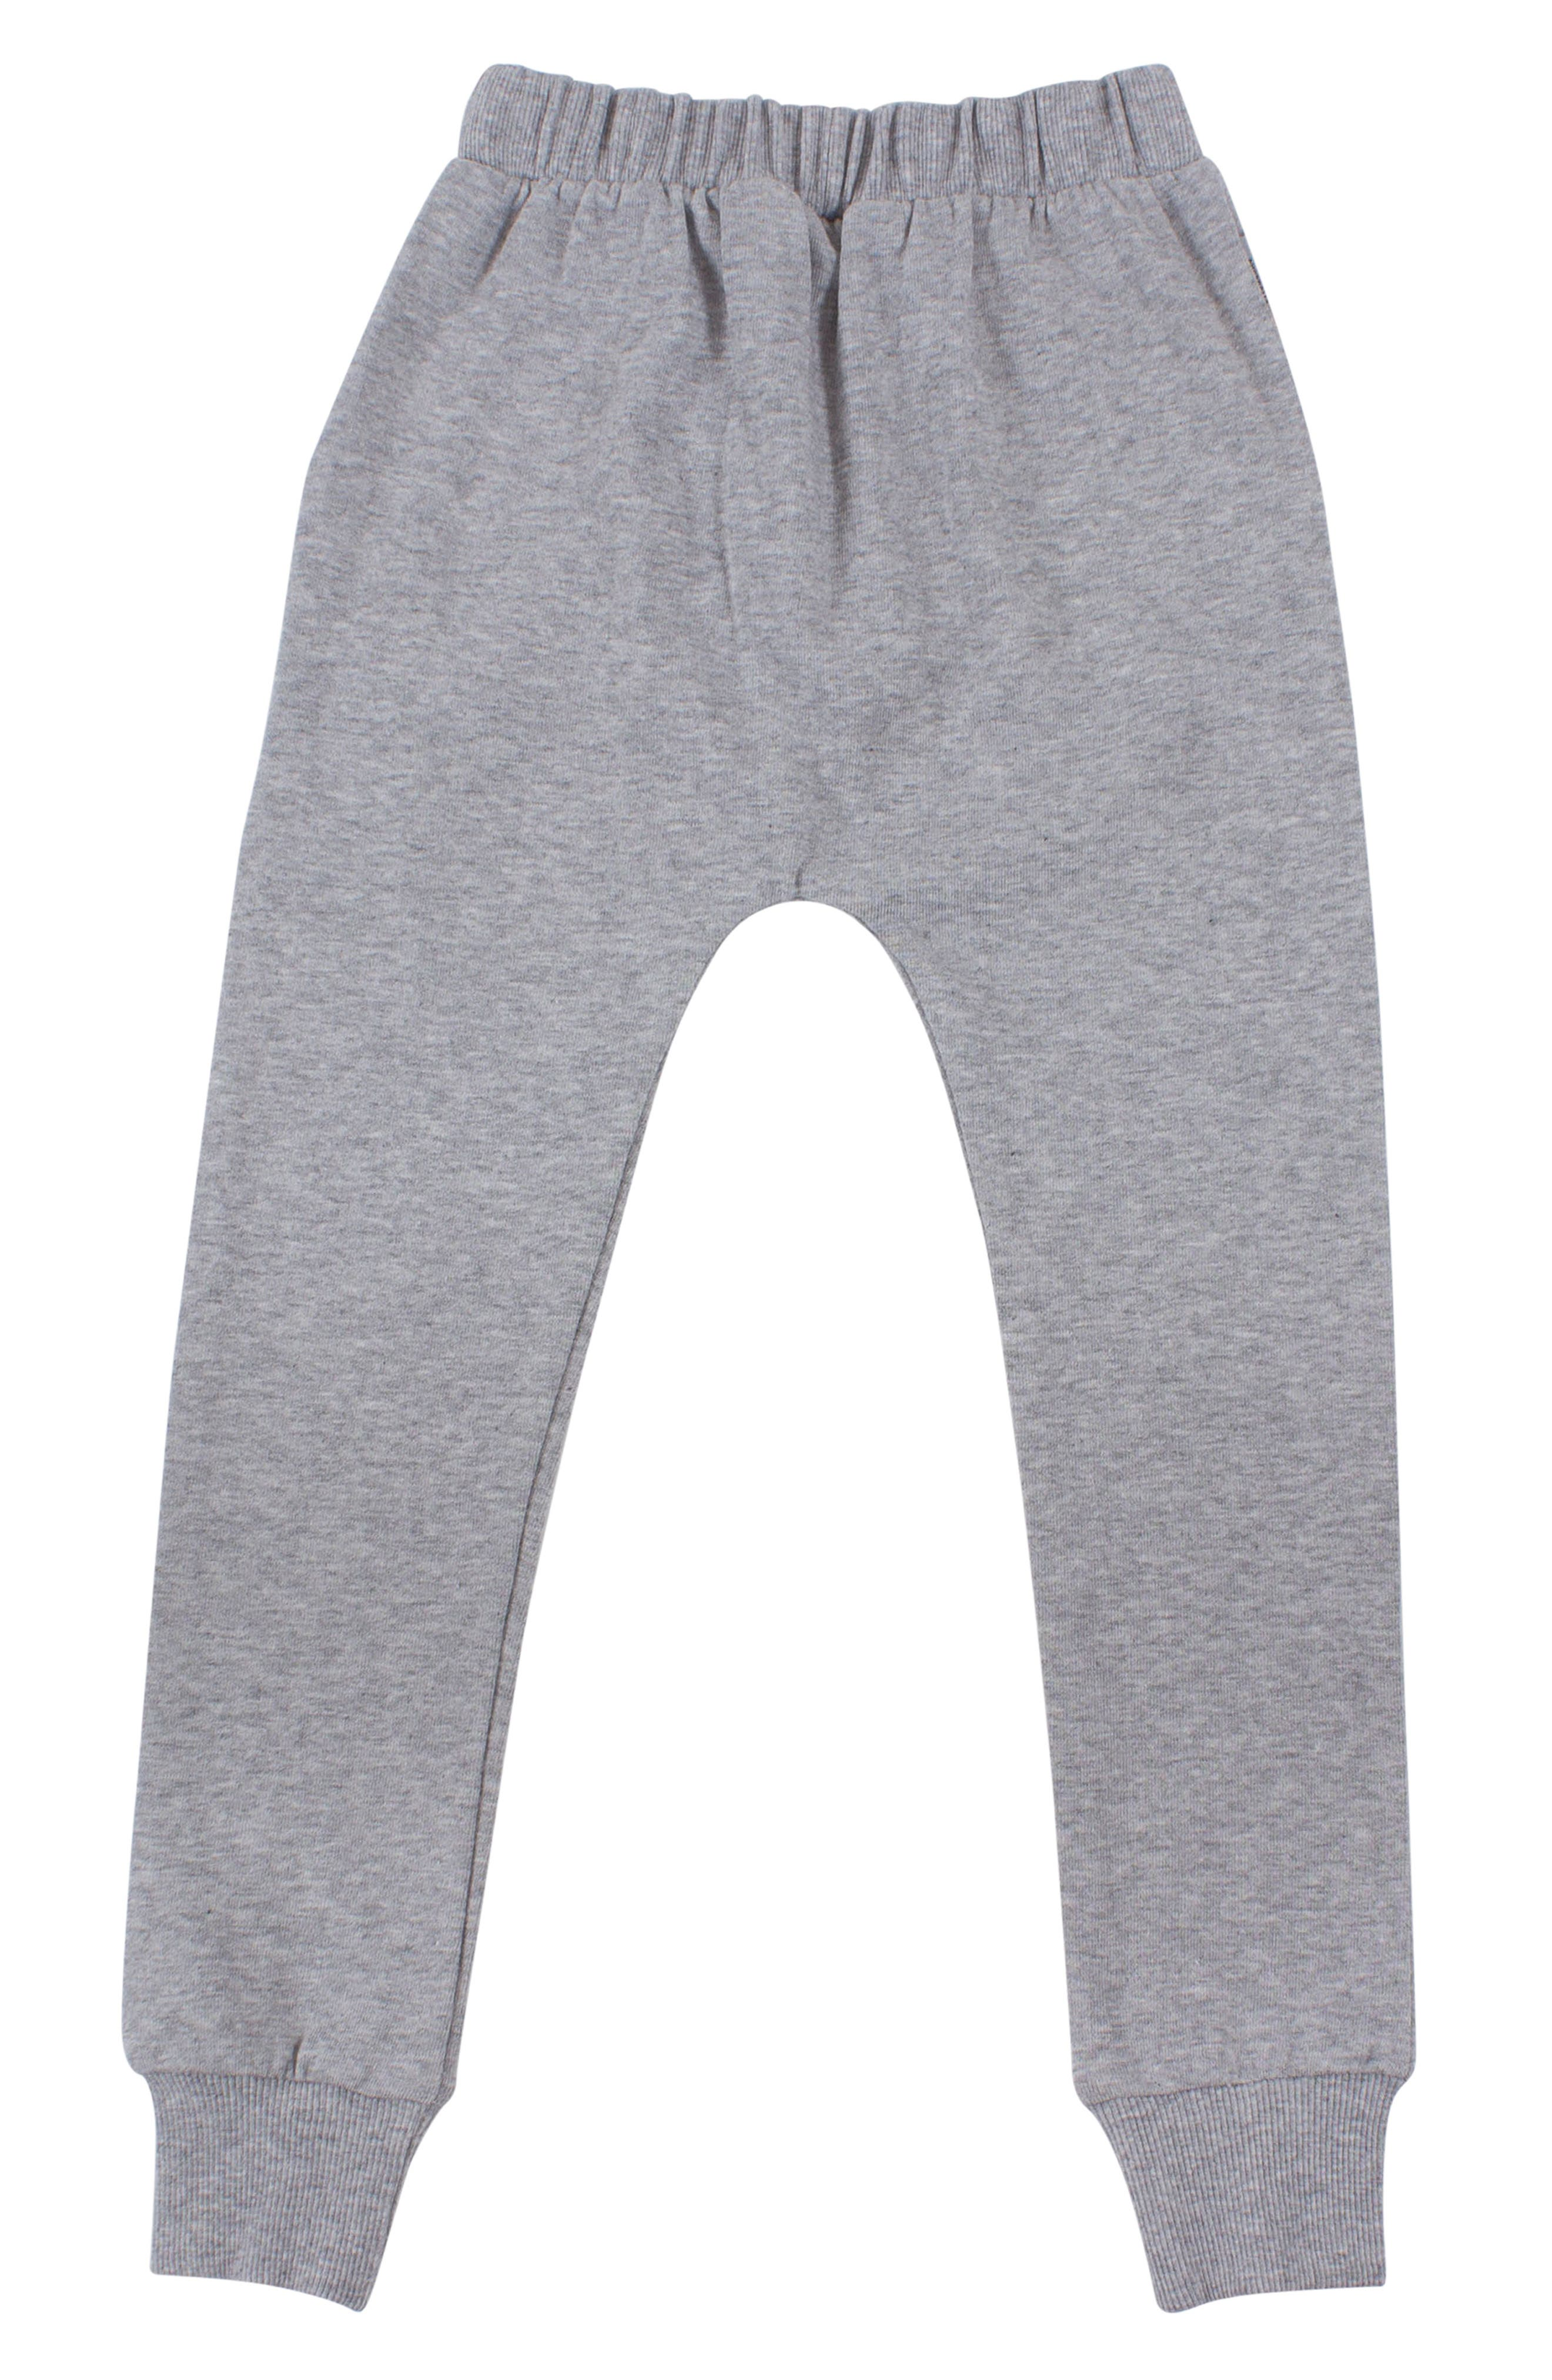 Zip Sweatpants,                             Alternate thumbnail 3, color,                             GREY MARL